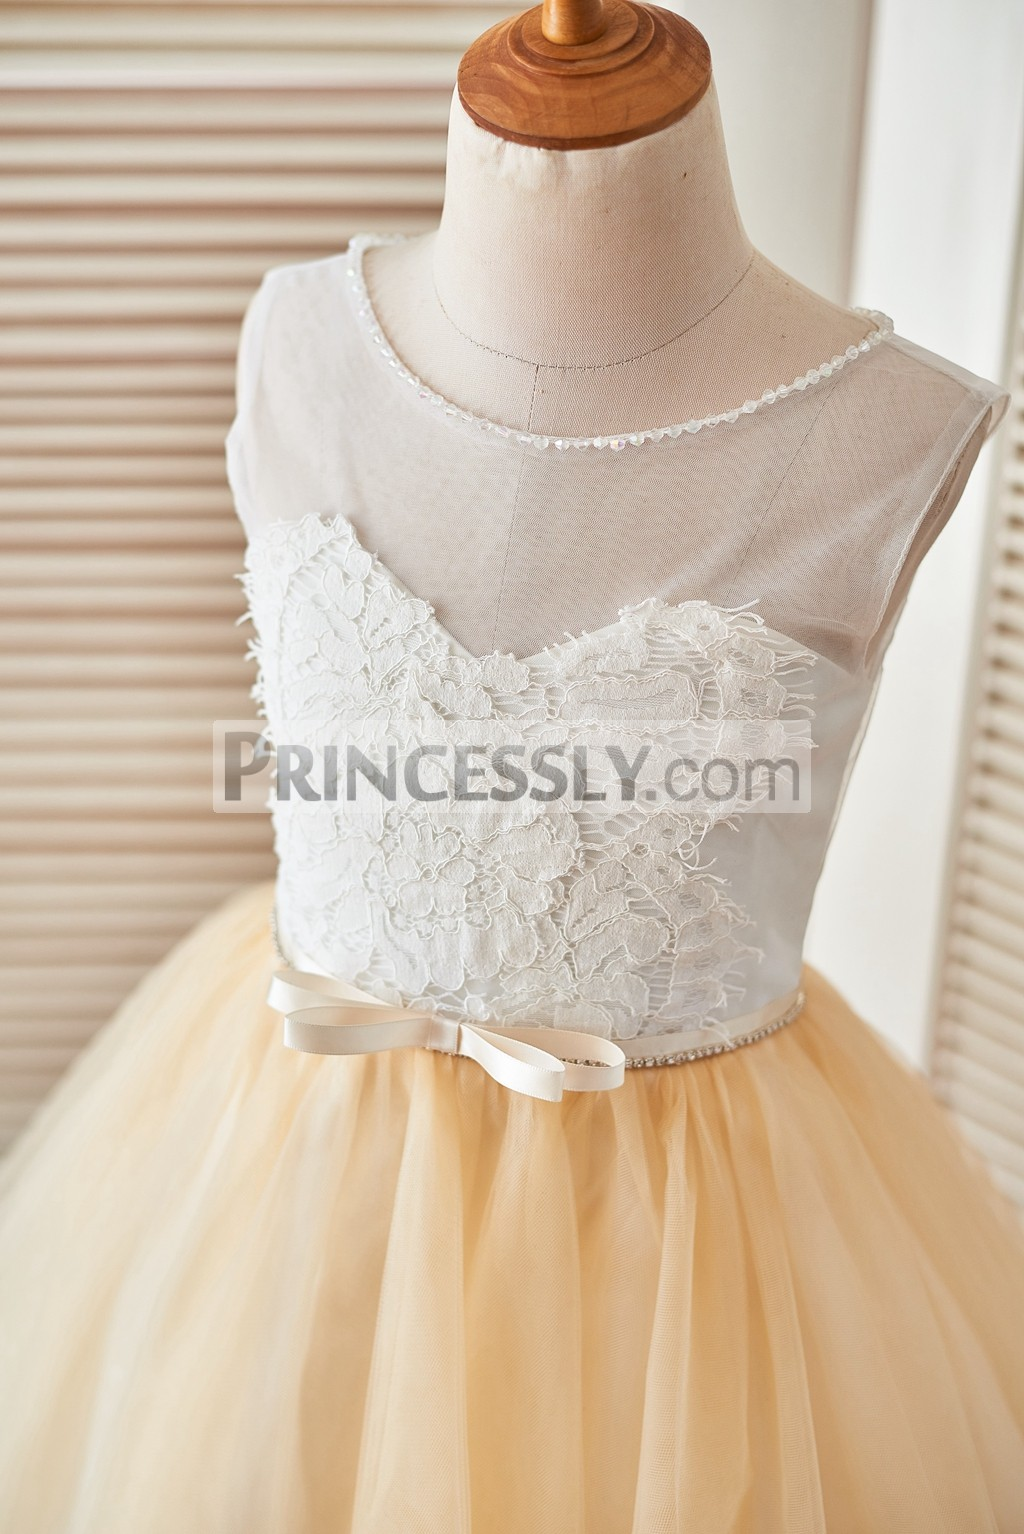 267a8c8a5c6 Ivory sheer lace champagne tulle flower girl dress. Beaded Open Back Tulle  Wedding Baby Girl Dress. Sheer floral lace bodice with a ribbon and bow